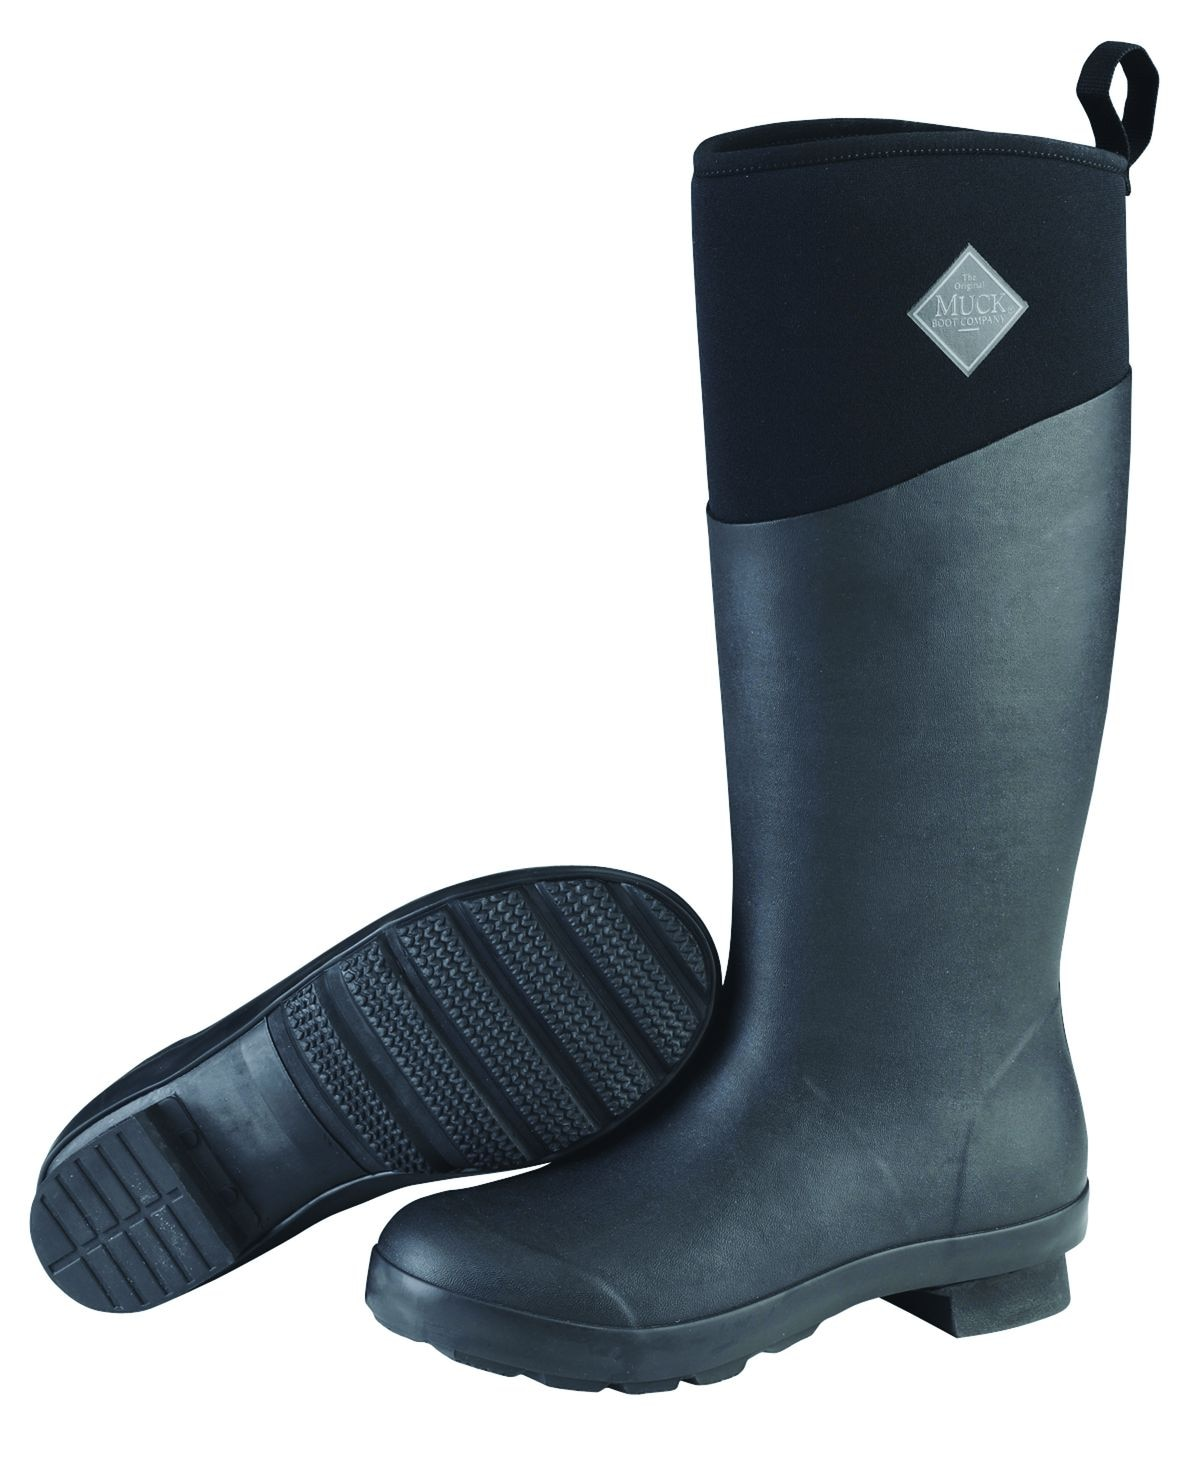 Muck Boot Tremont Tall Boots